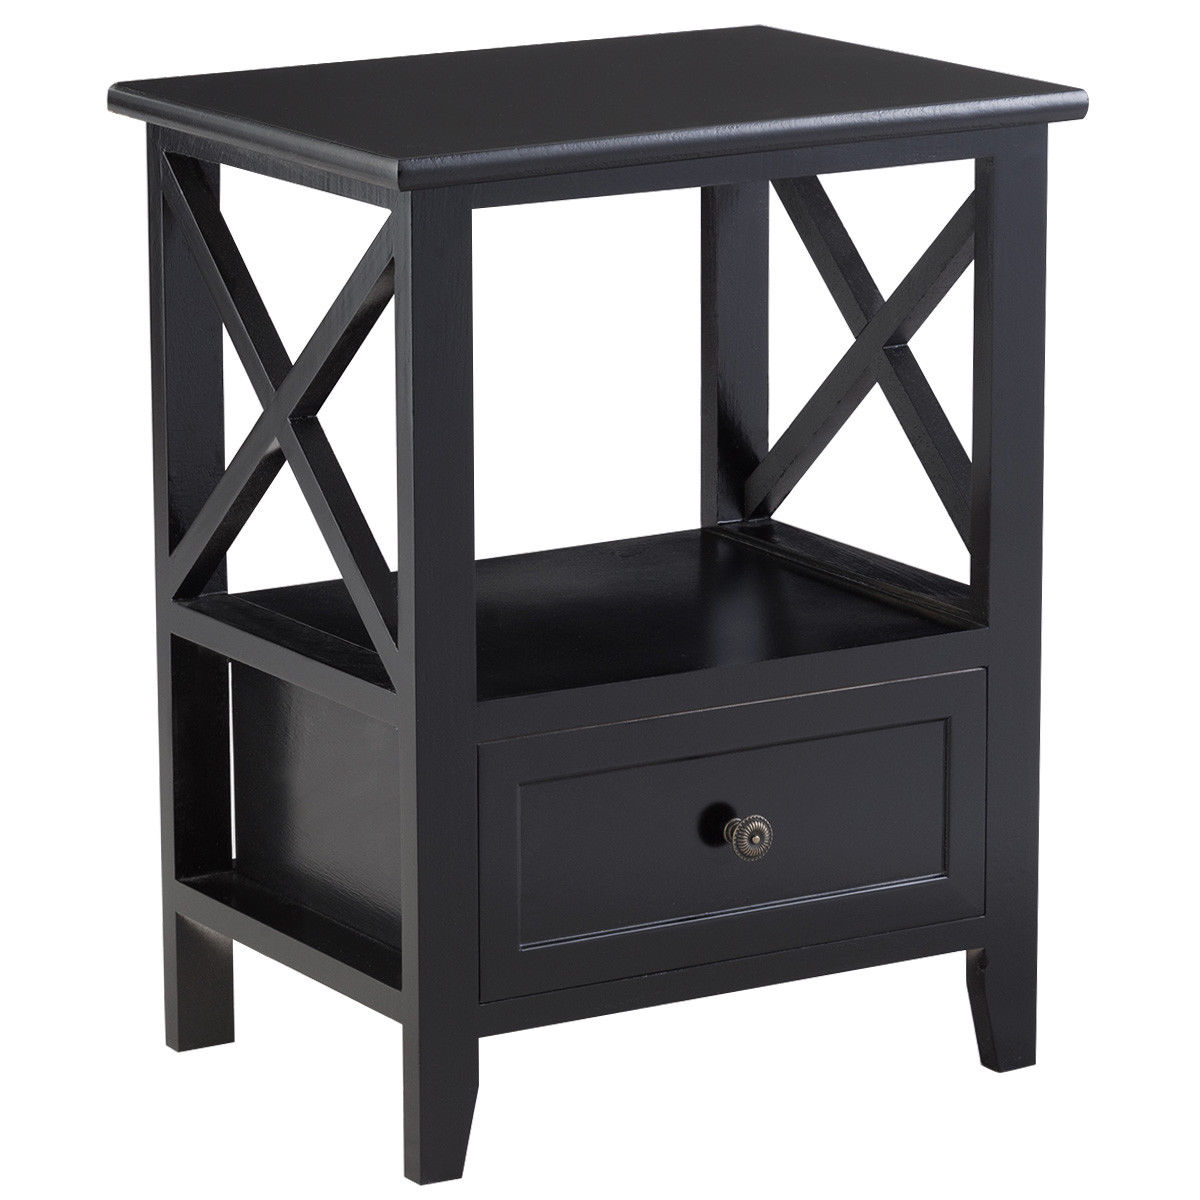 Gymax Black Nightstand End Side Table Shelf Storage Drawer Room Furniture